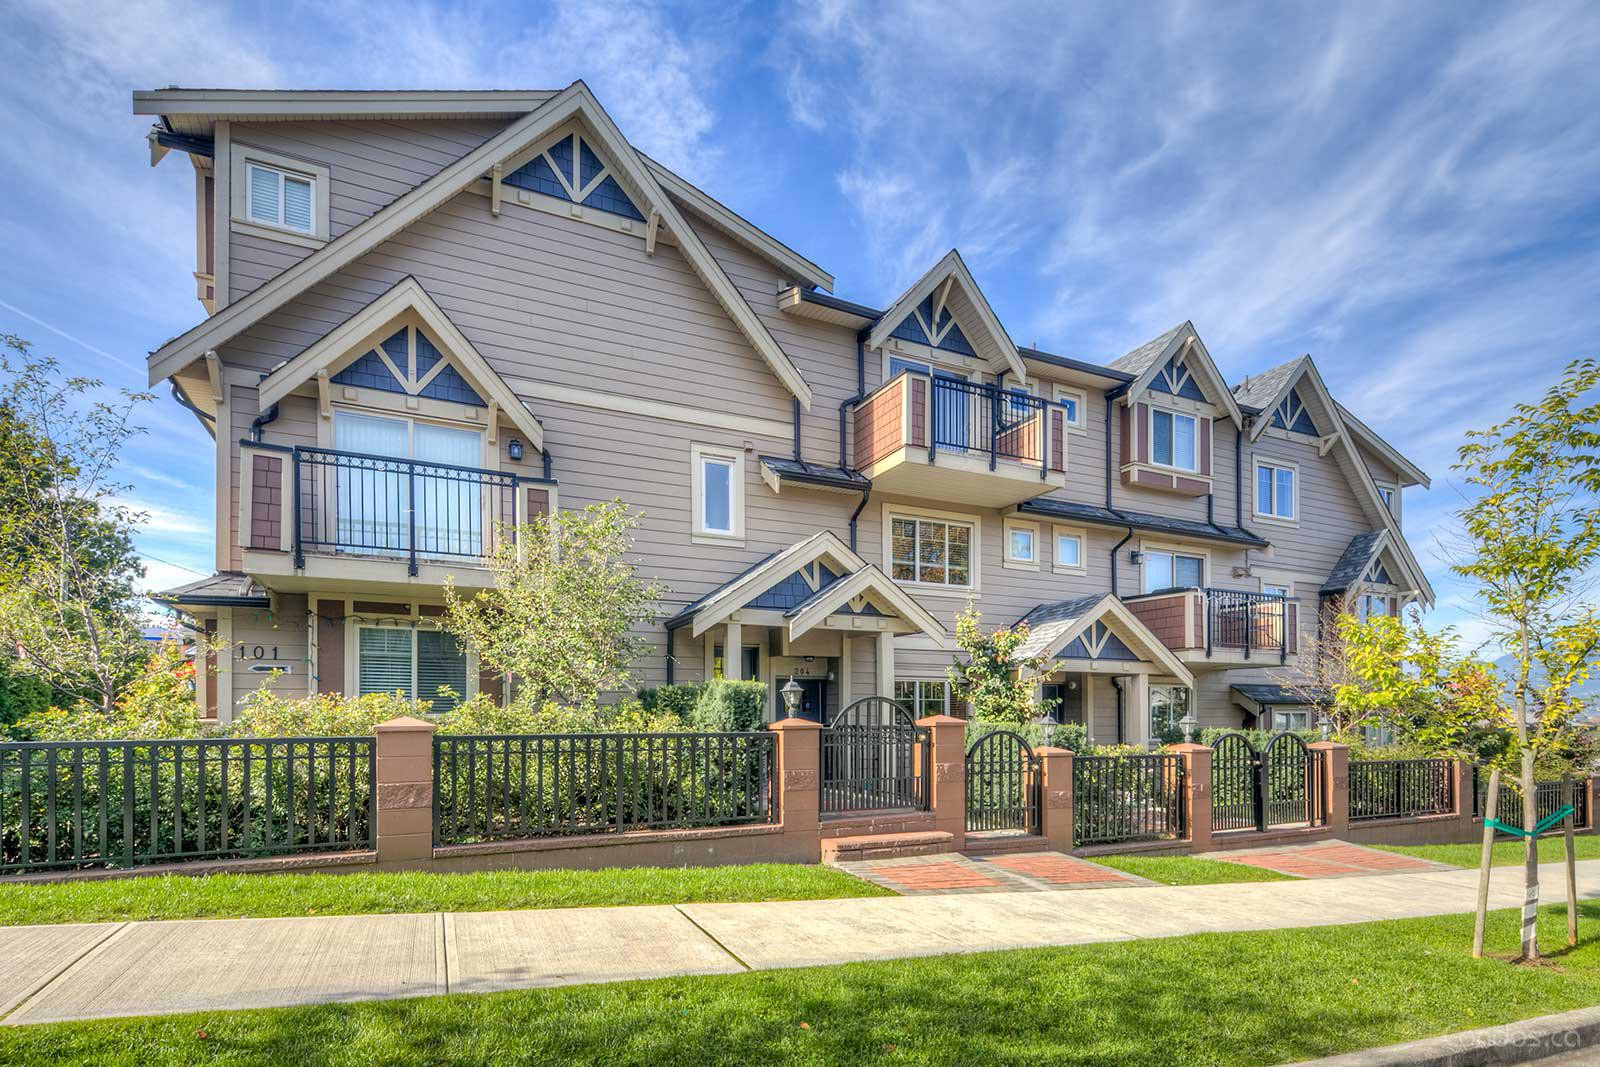 Manor Heights at 3033 Esmond Ave, Burnaby 0